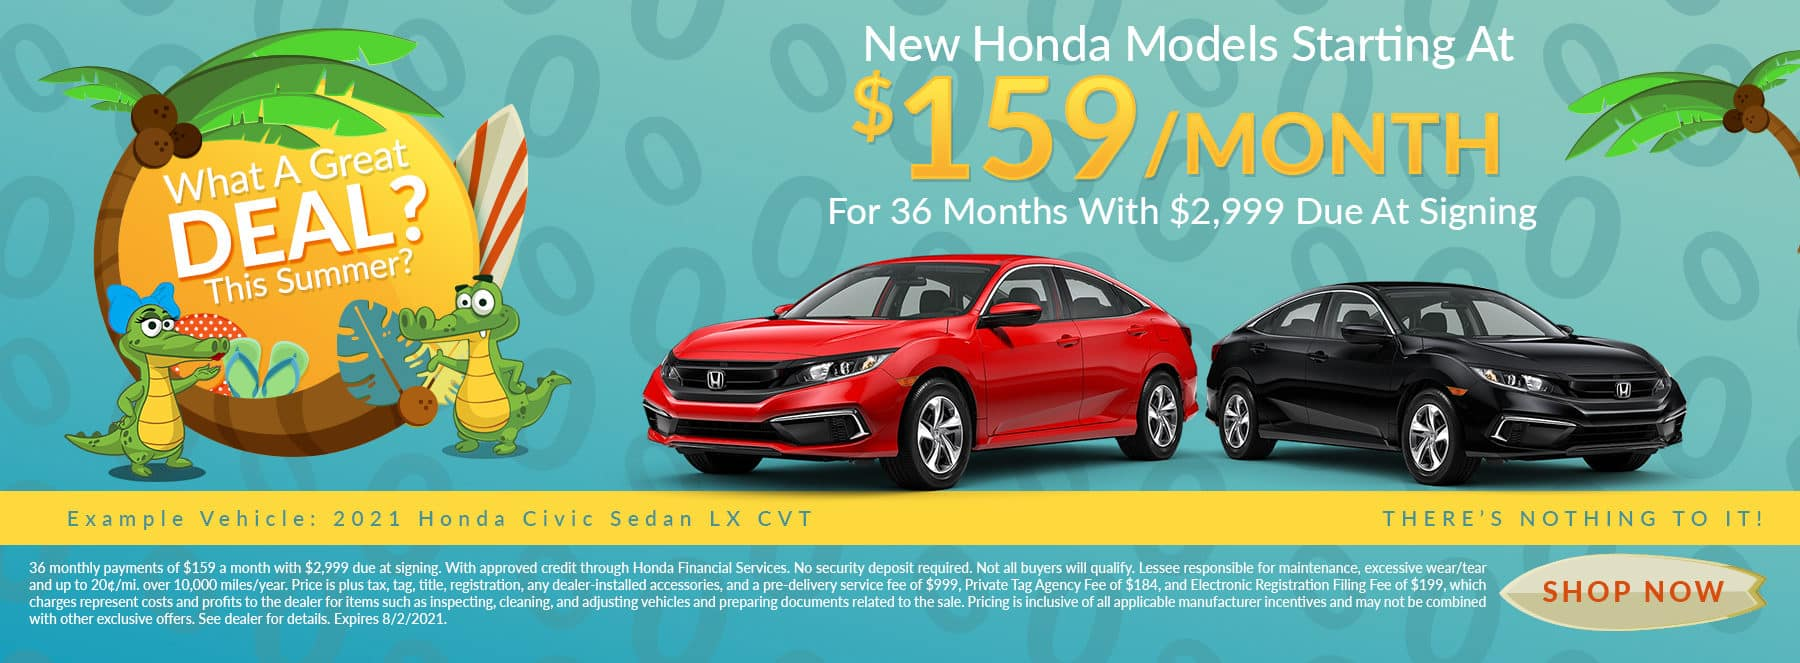 Want A Great Deal This Summer? | New Honda Models Starting At $159/Month For 36 Months With $2,999 Due At Signing | Example Vehicle: 2021 Honda Civic Sedan LX CVT